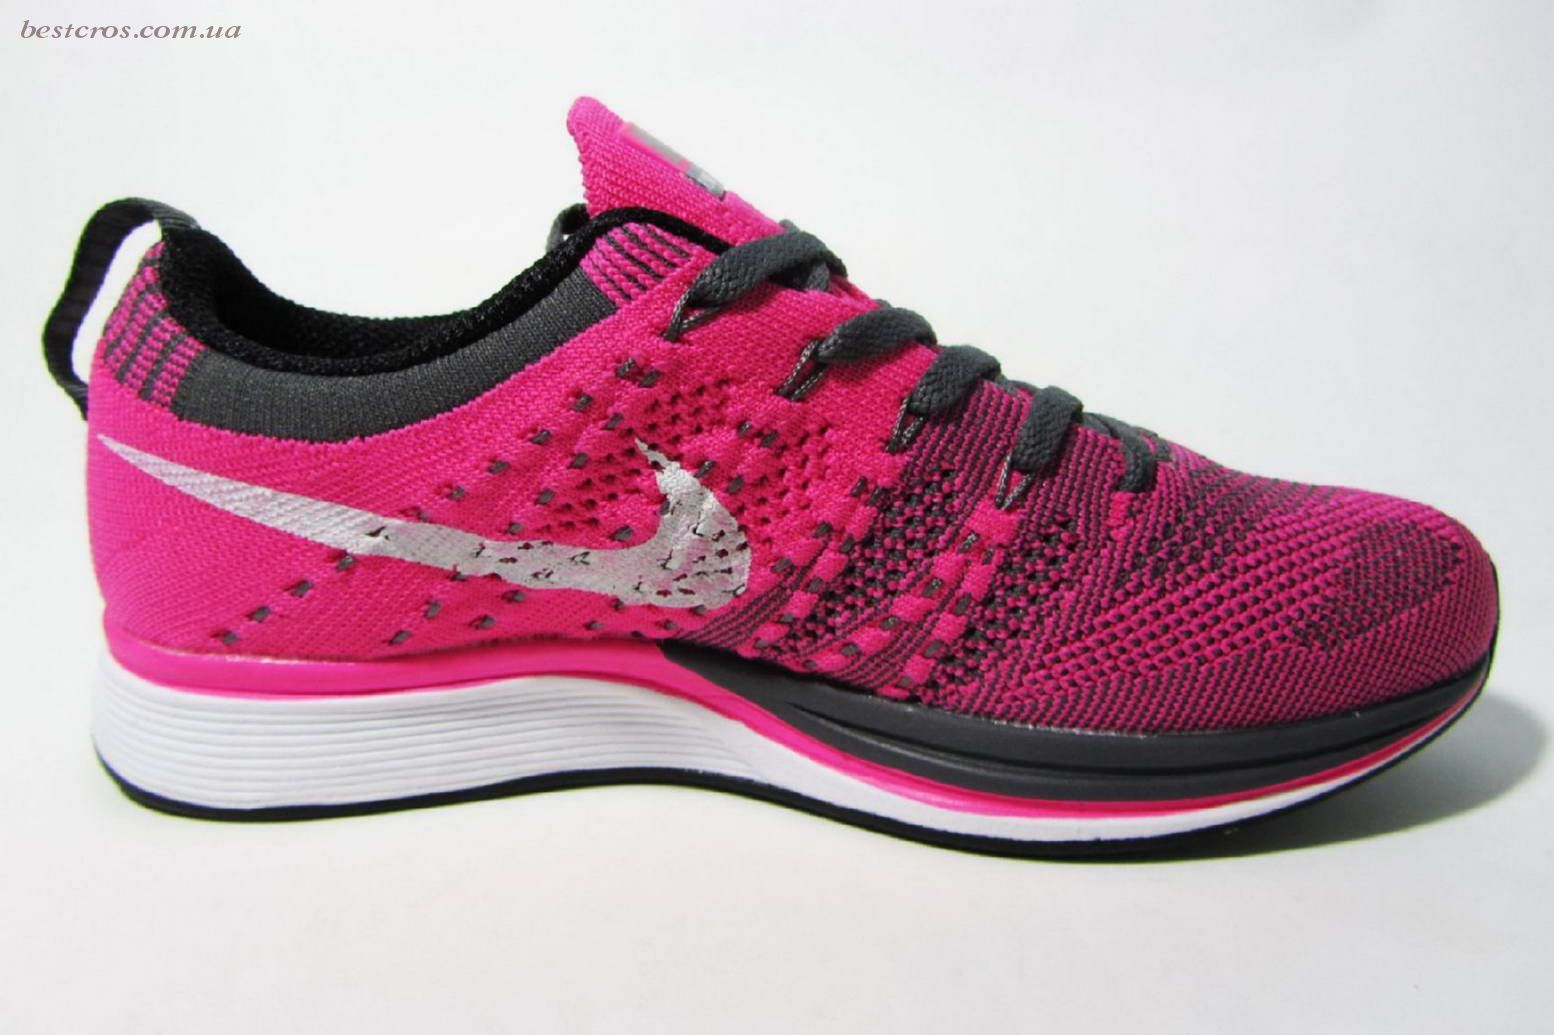 Женские кроссовки Nike Free Flyknit Pink/White  - фото №2